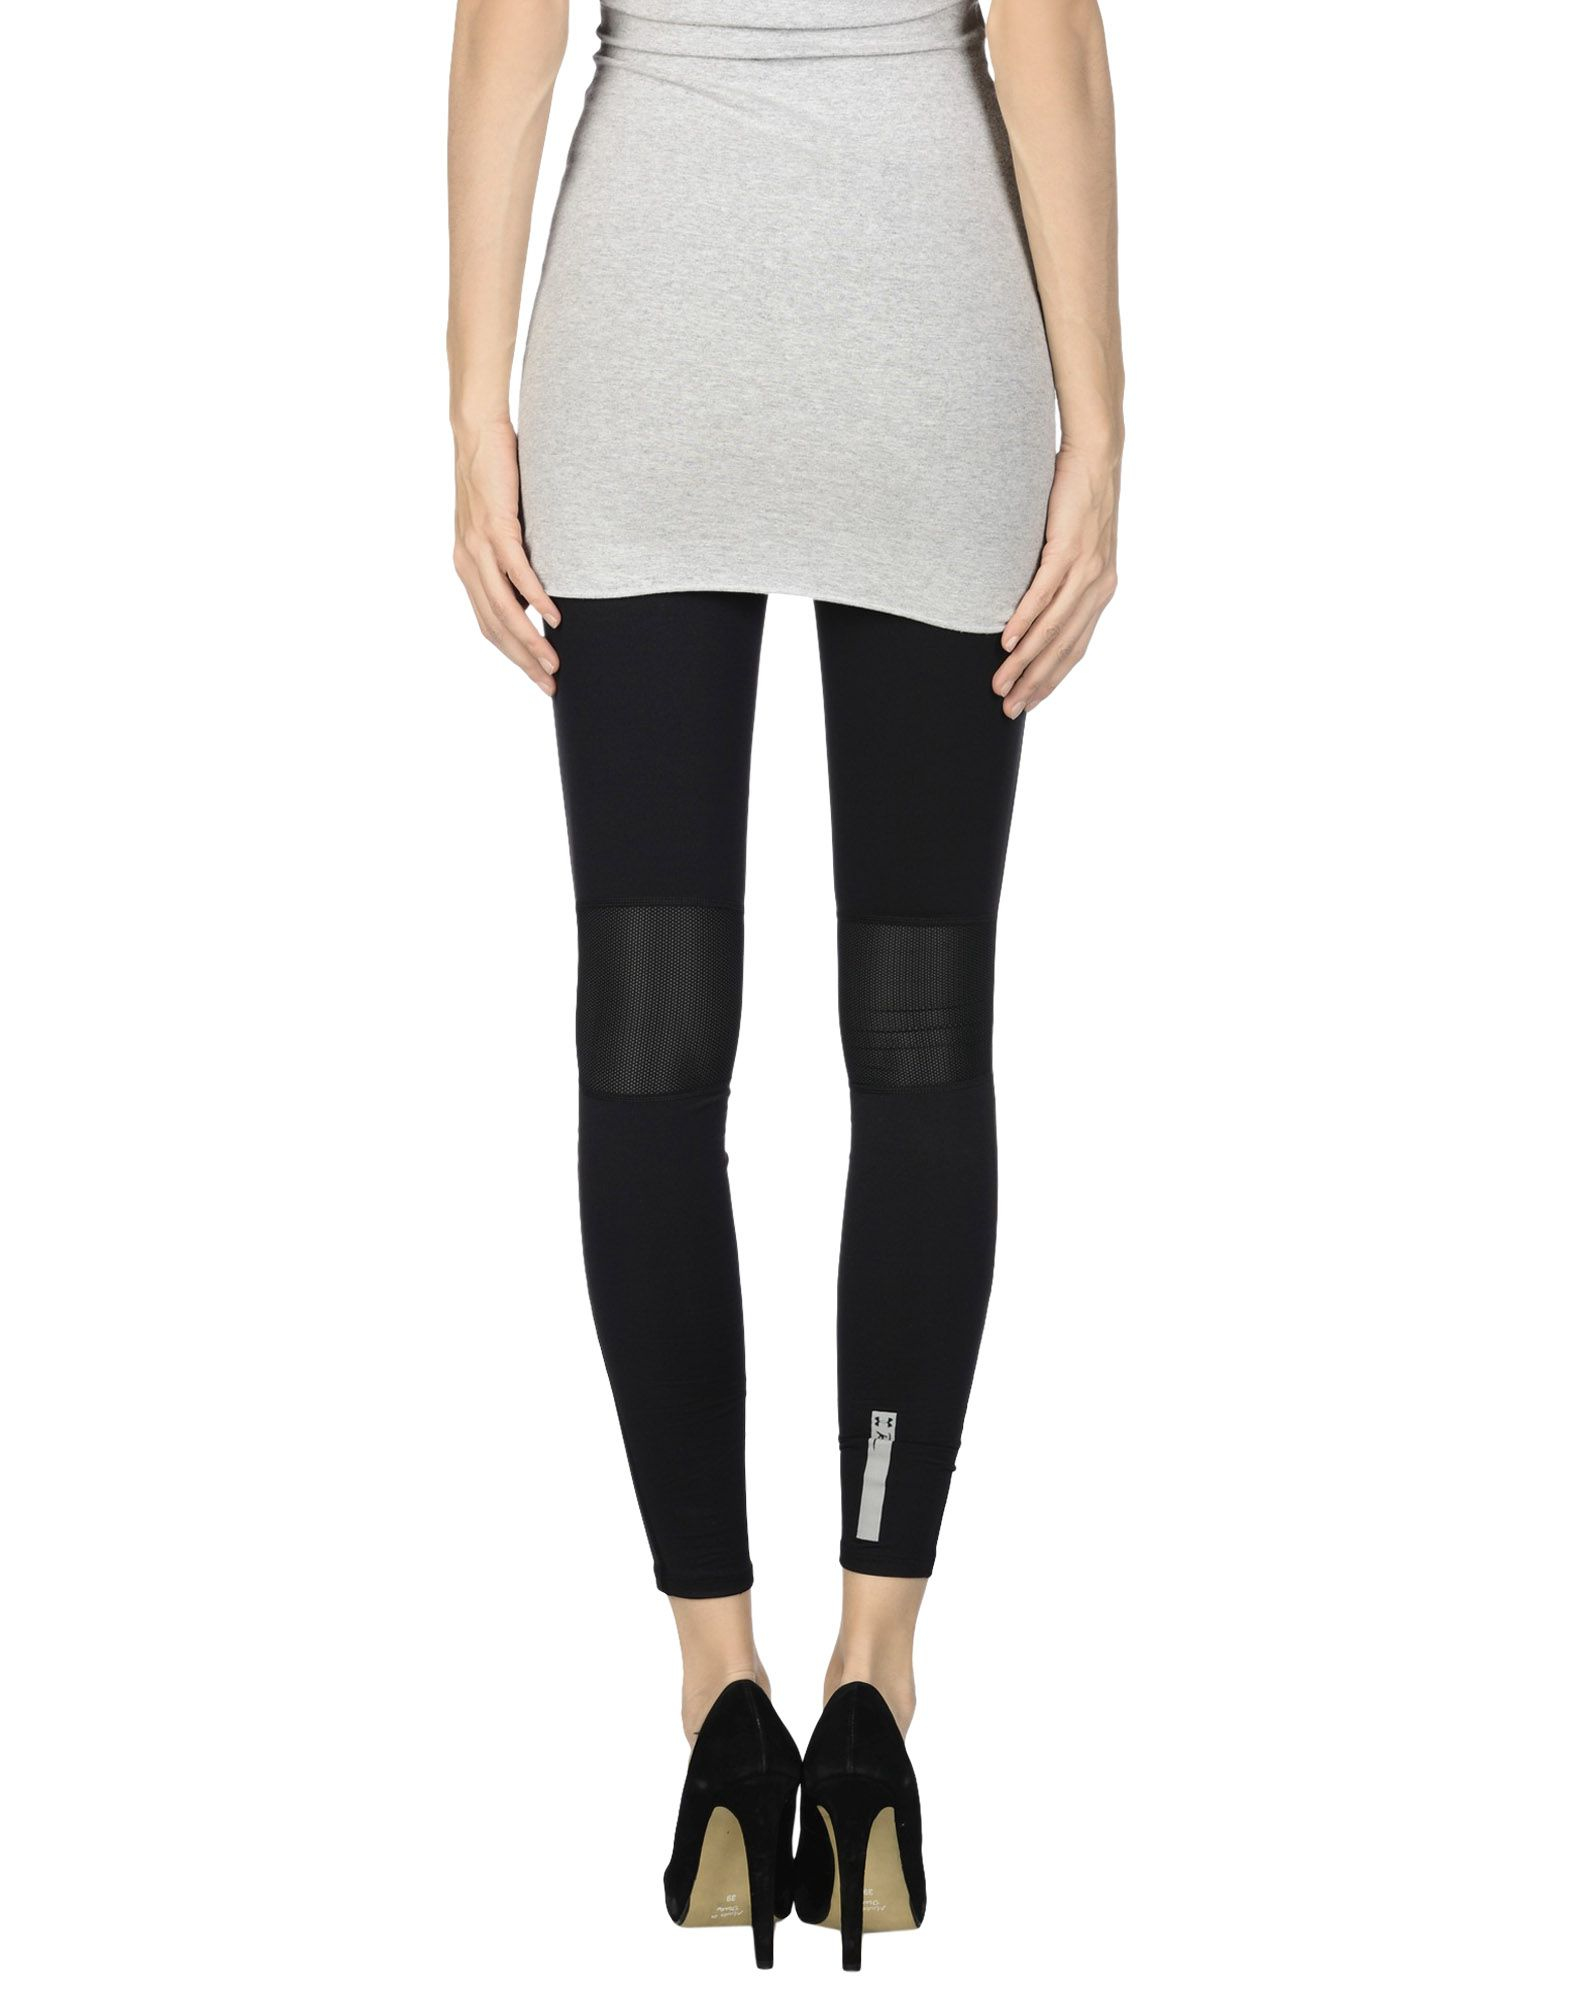 Under armour Leggings in Black | Lyst